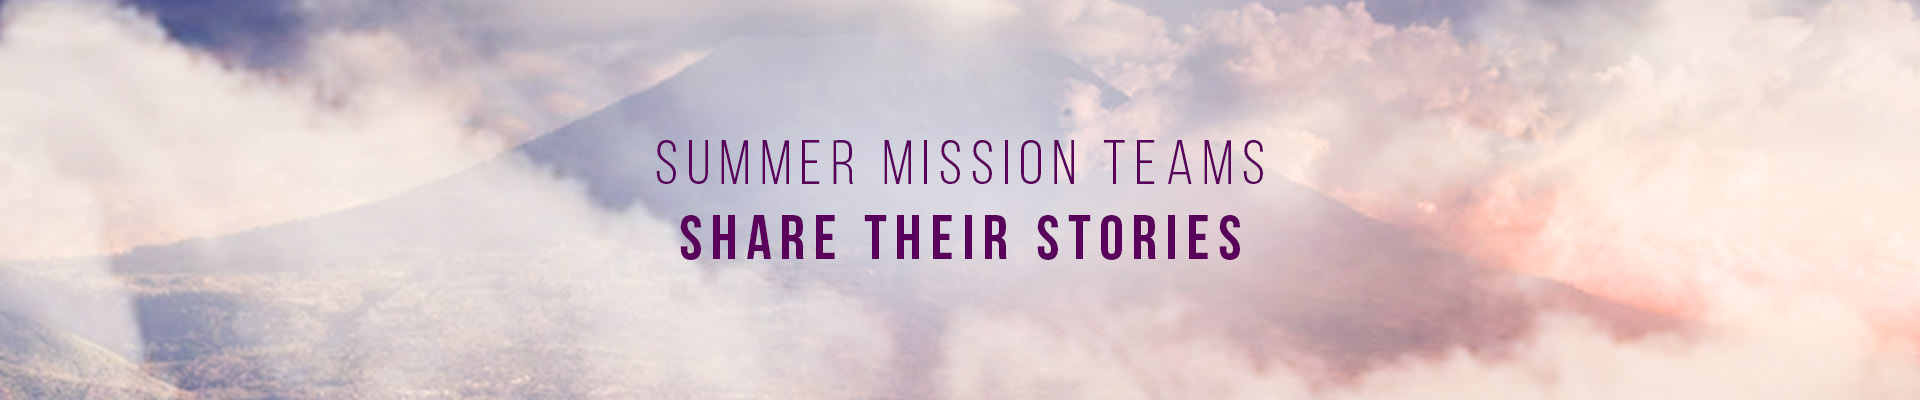 summer mission teams share their stories 2016